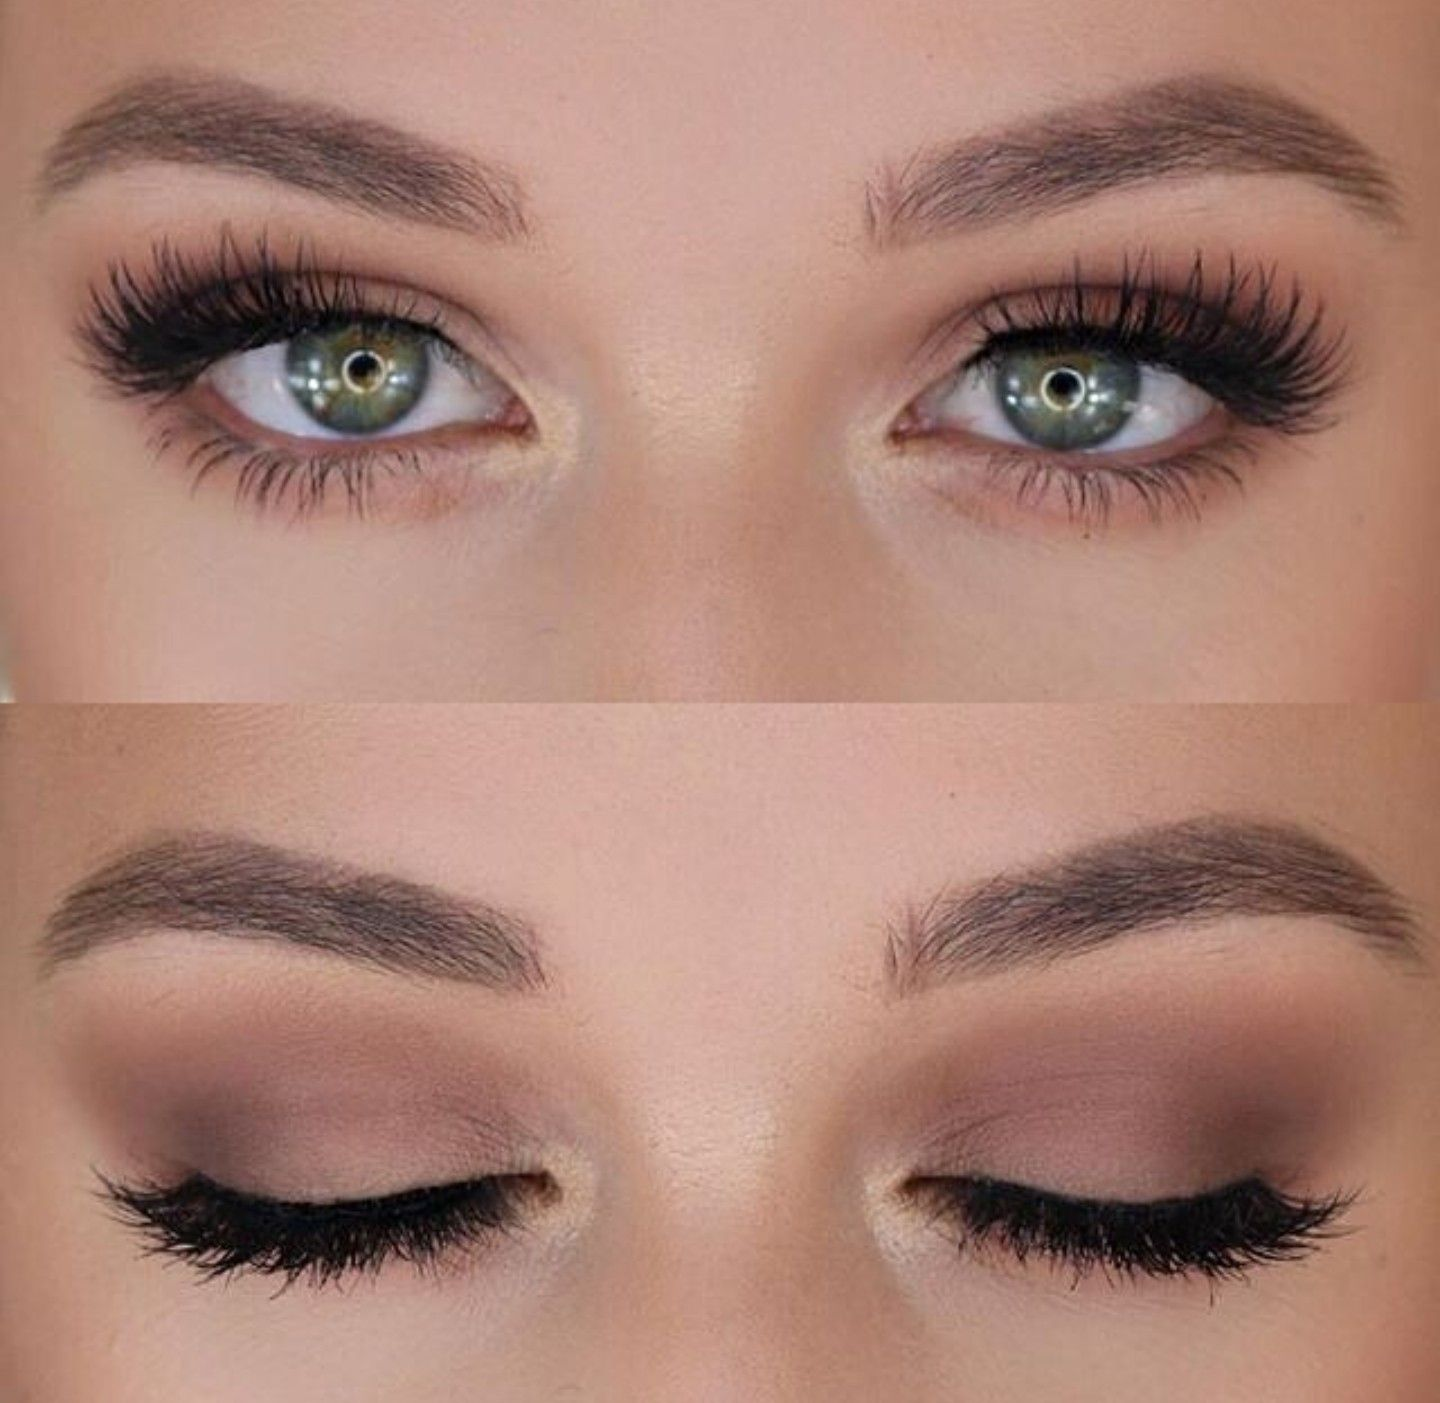 Soft Makeup For Green Eyes Makeup Ideas In 2019 Makeup Eye